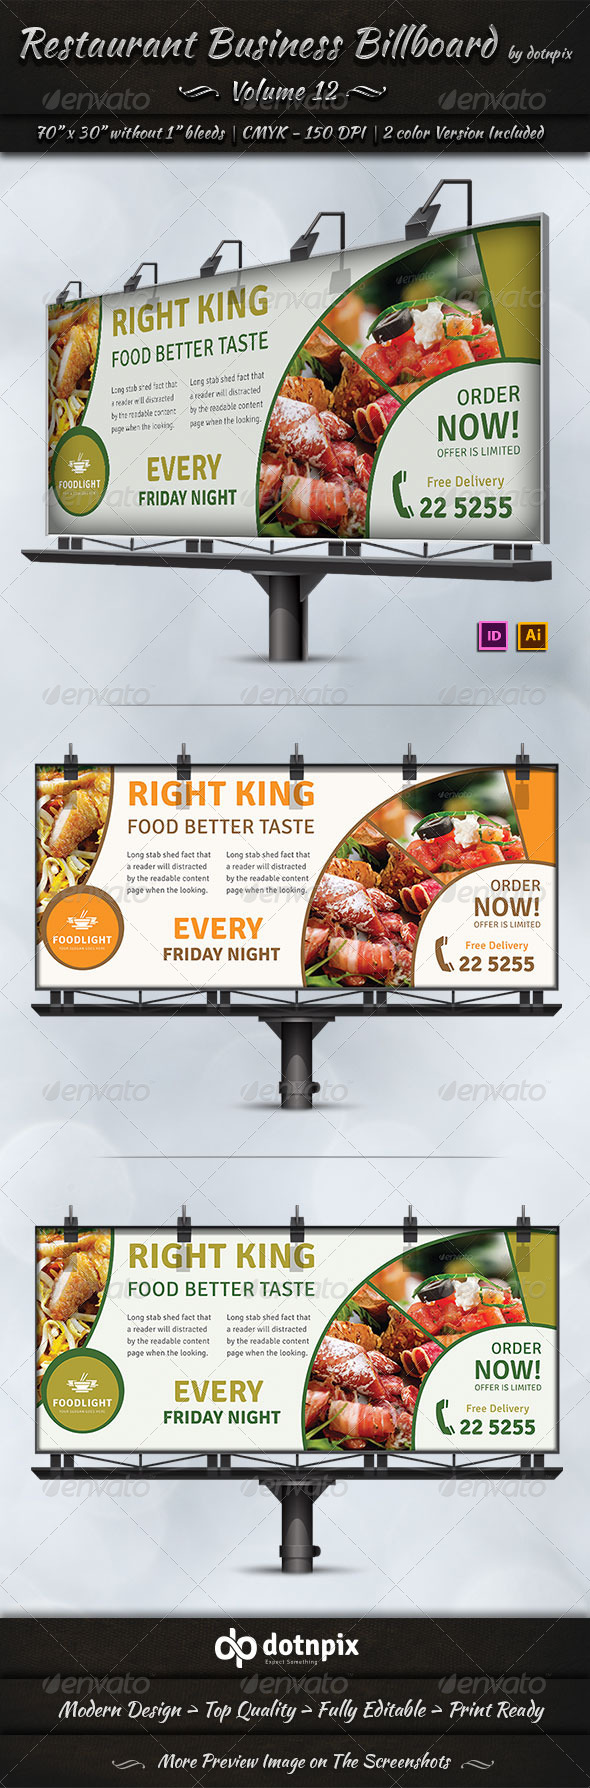 GraphicRiver Restaurant Business Billboard Volume 12 7973158